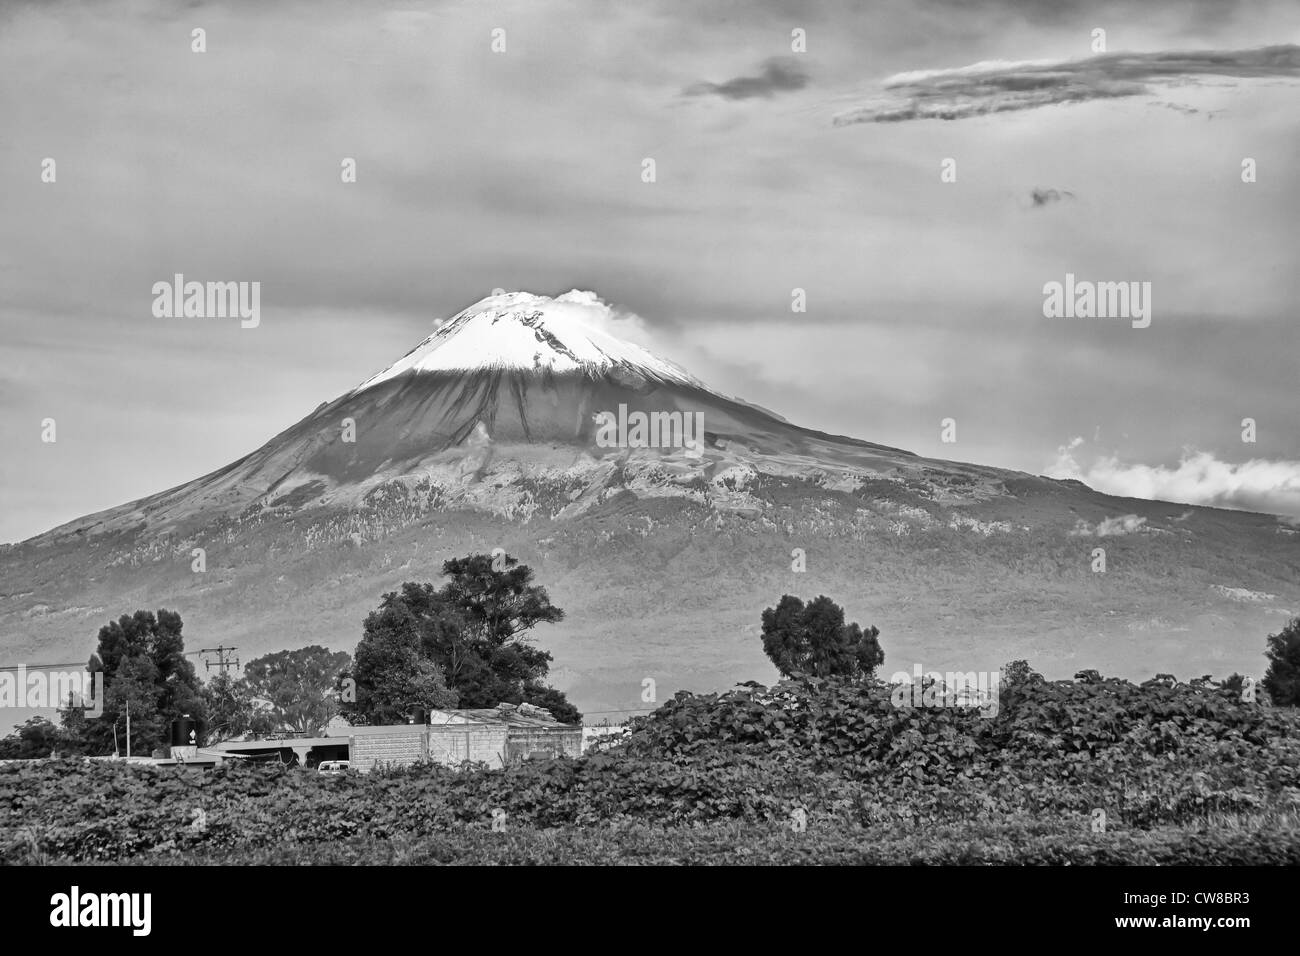 Mt. Popocatepetl Volcano in Mexico - Stock Image